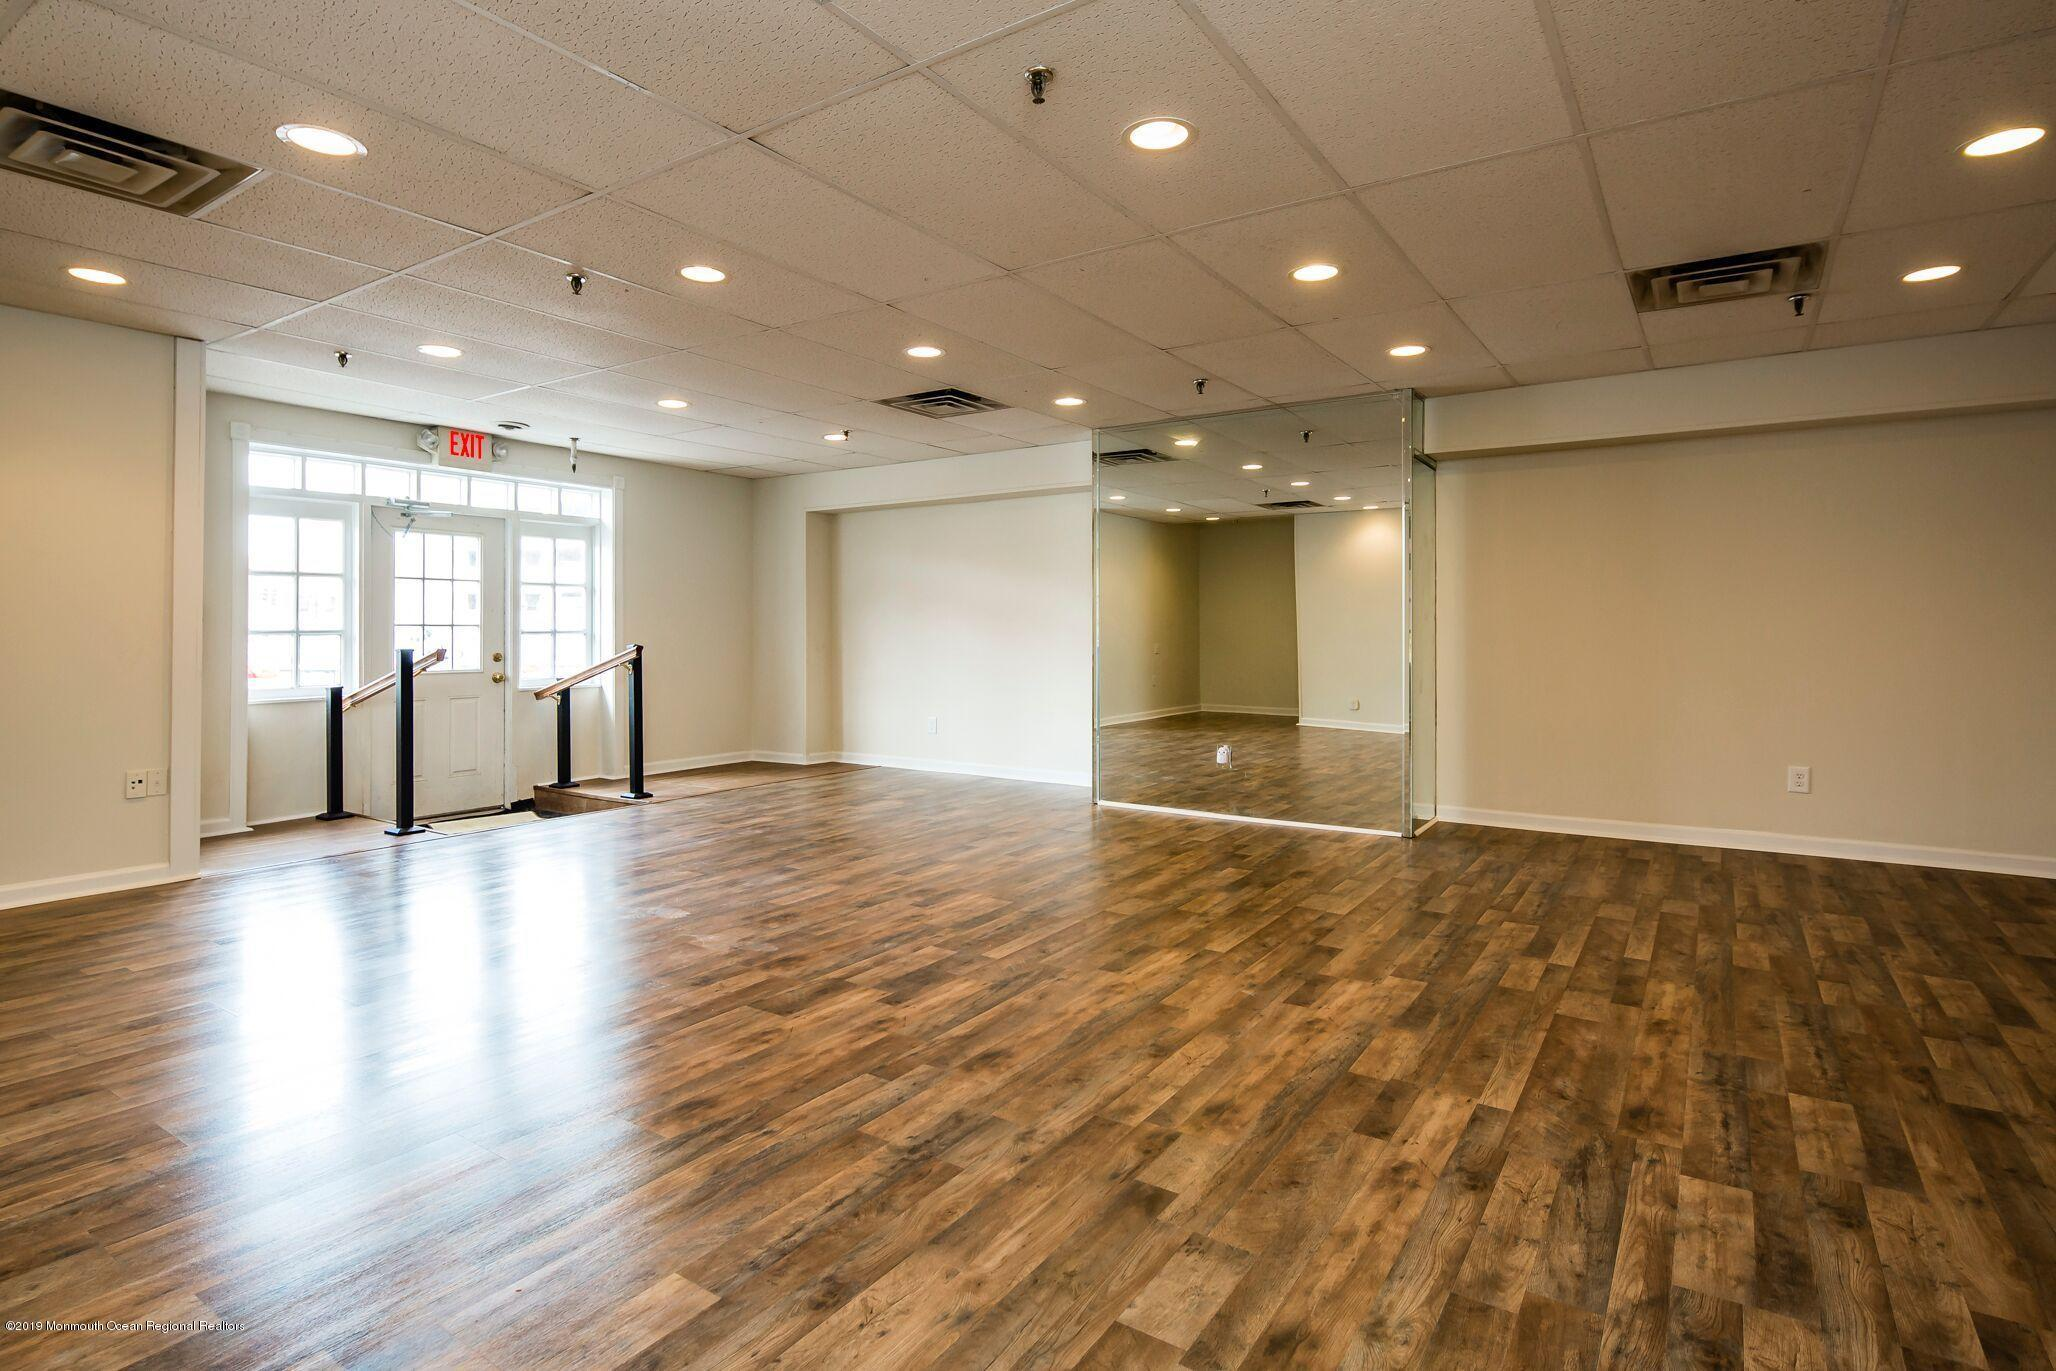 Location location!  Awesome office space available one block from both Front and Broad!  1000 sf of pristine space with bathroom and new gorgeous floors.  Parking lot for tenants of the building.